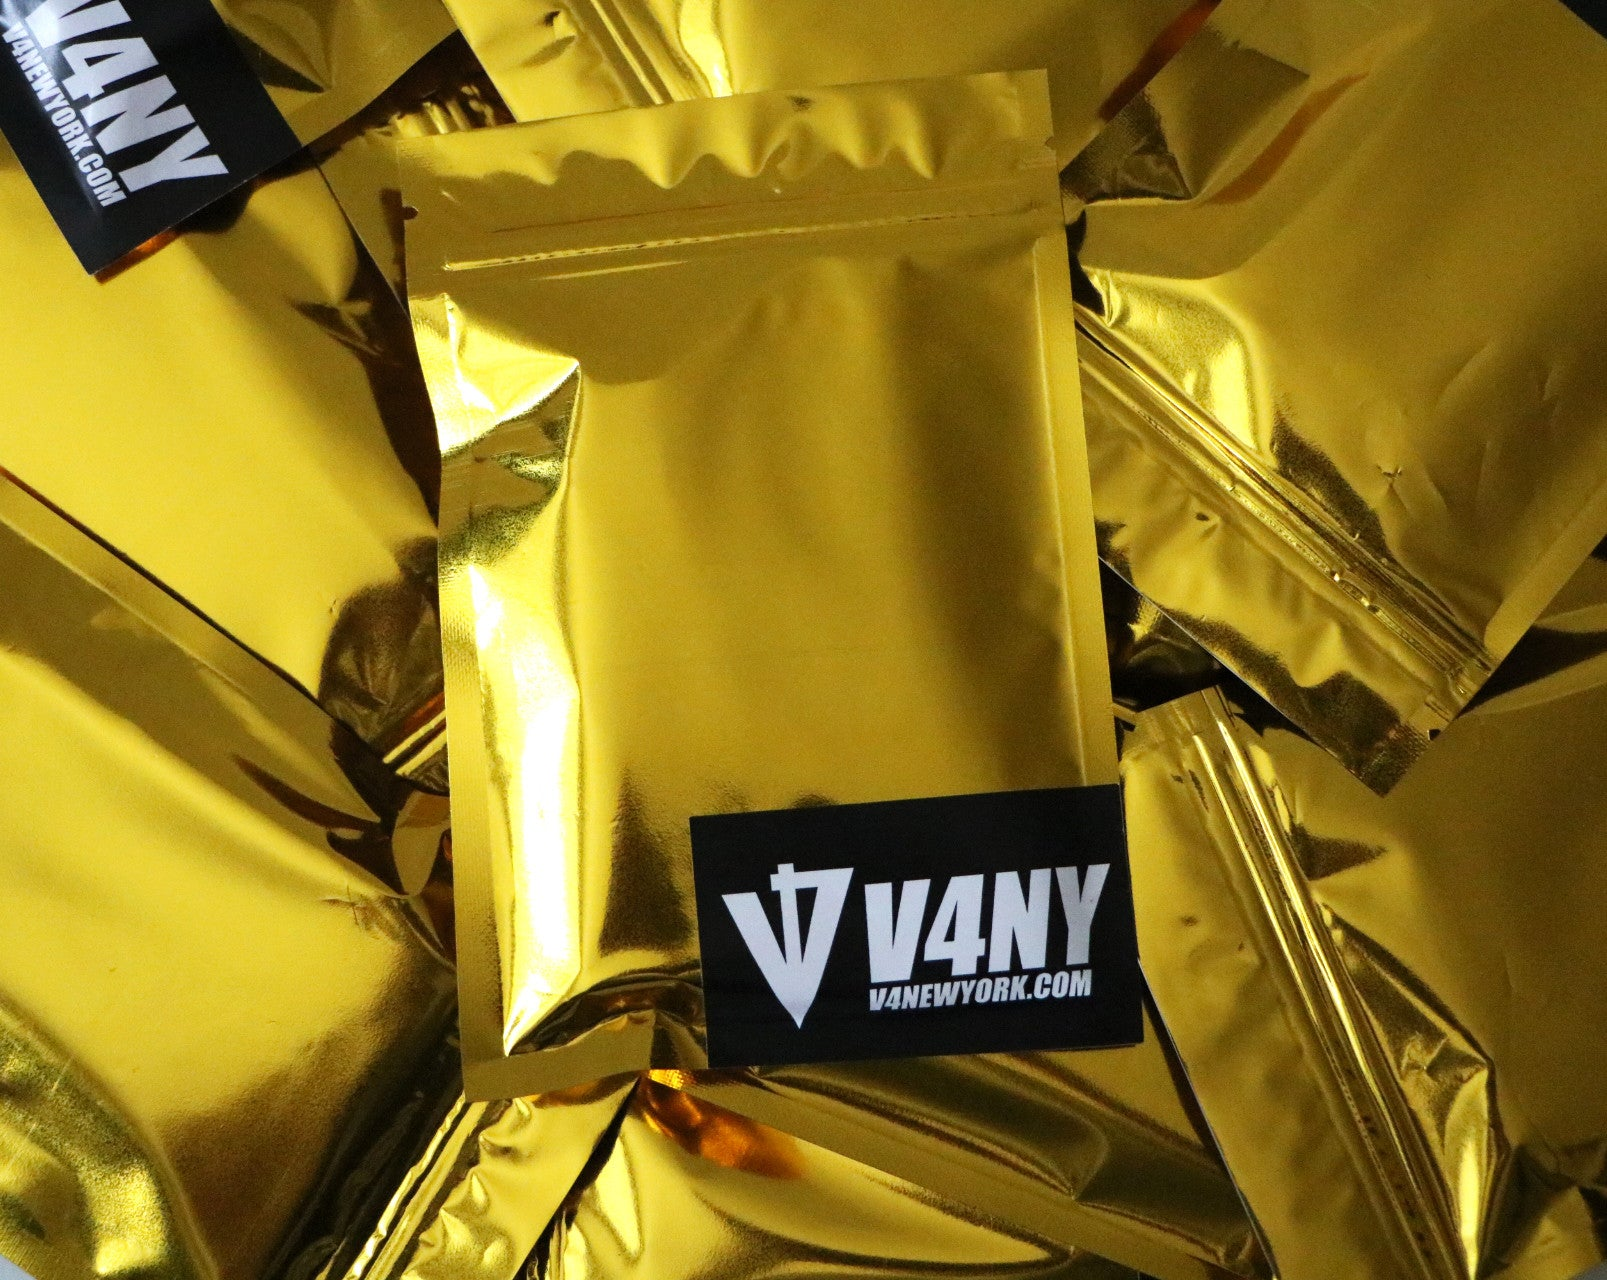 V4 New York Gold Packs